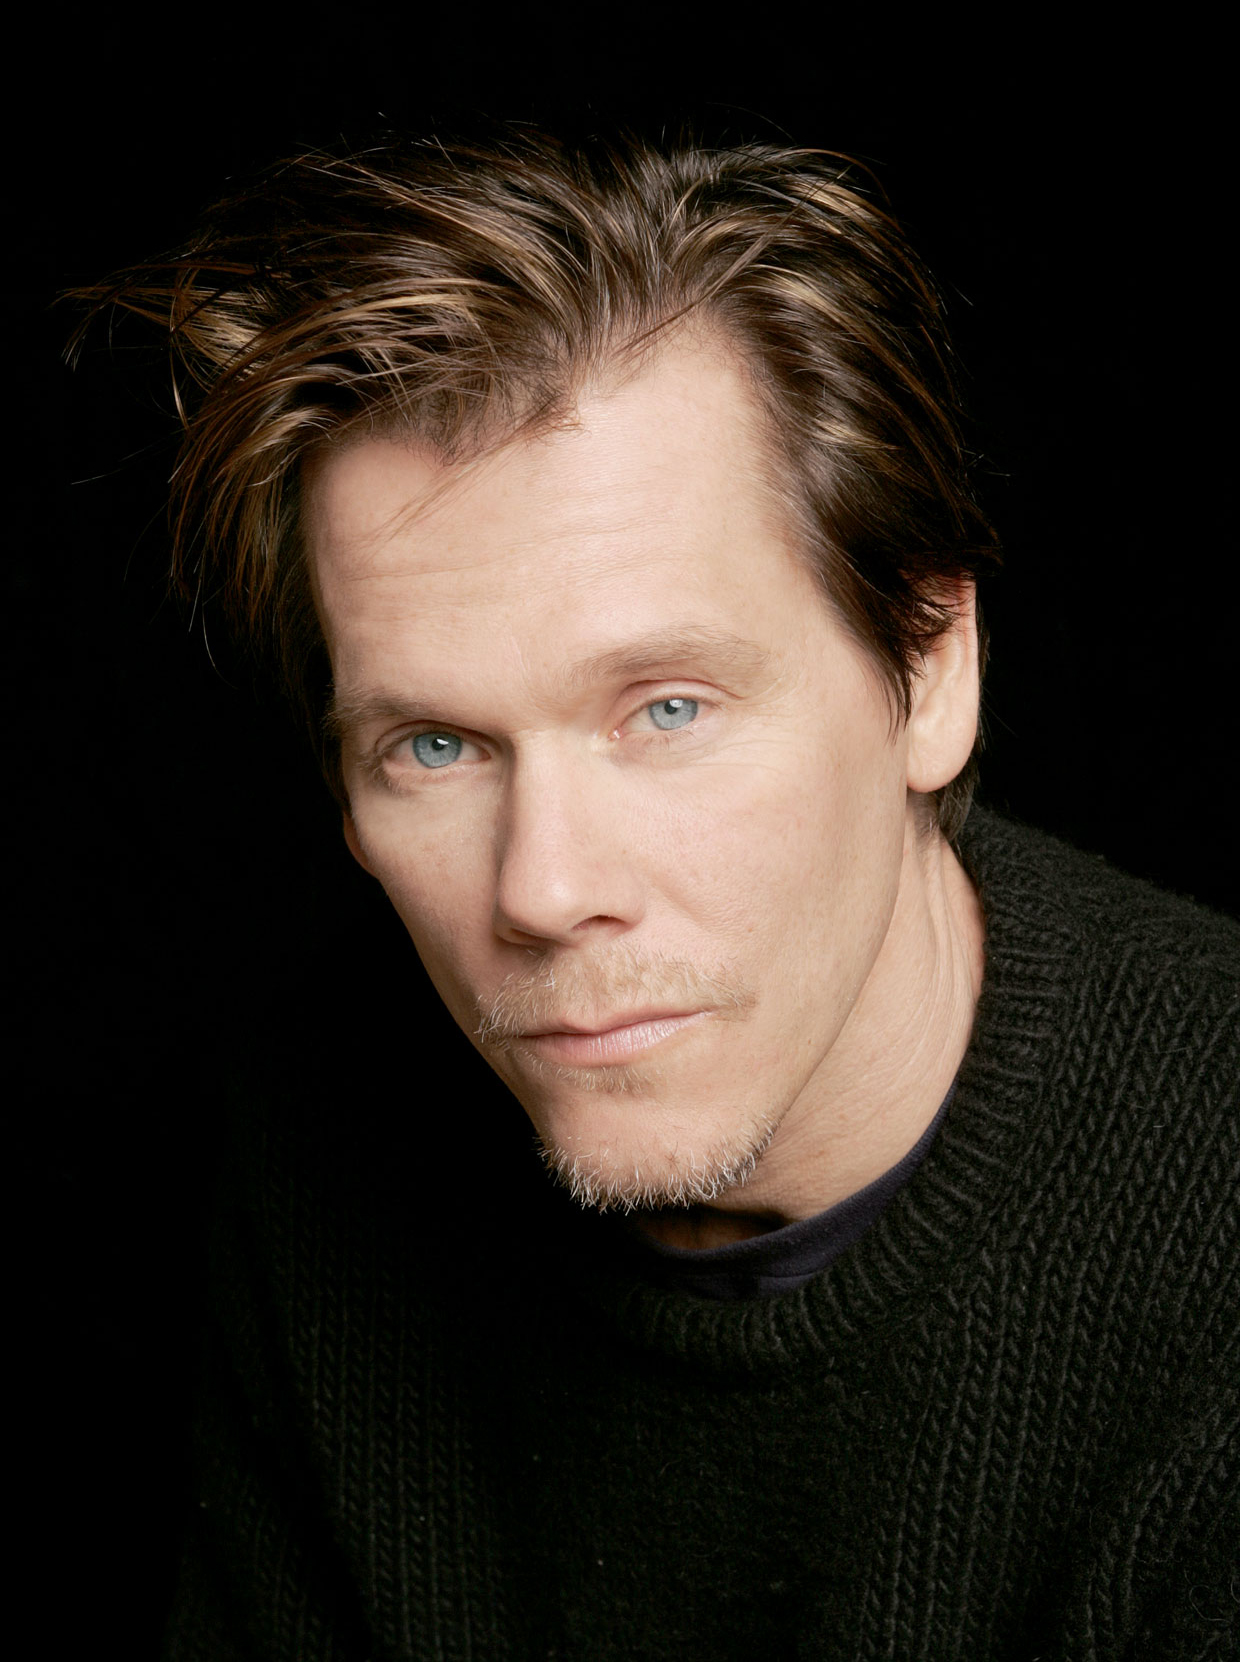 019-Kevin-Bacon_002